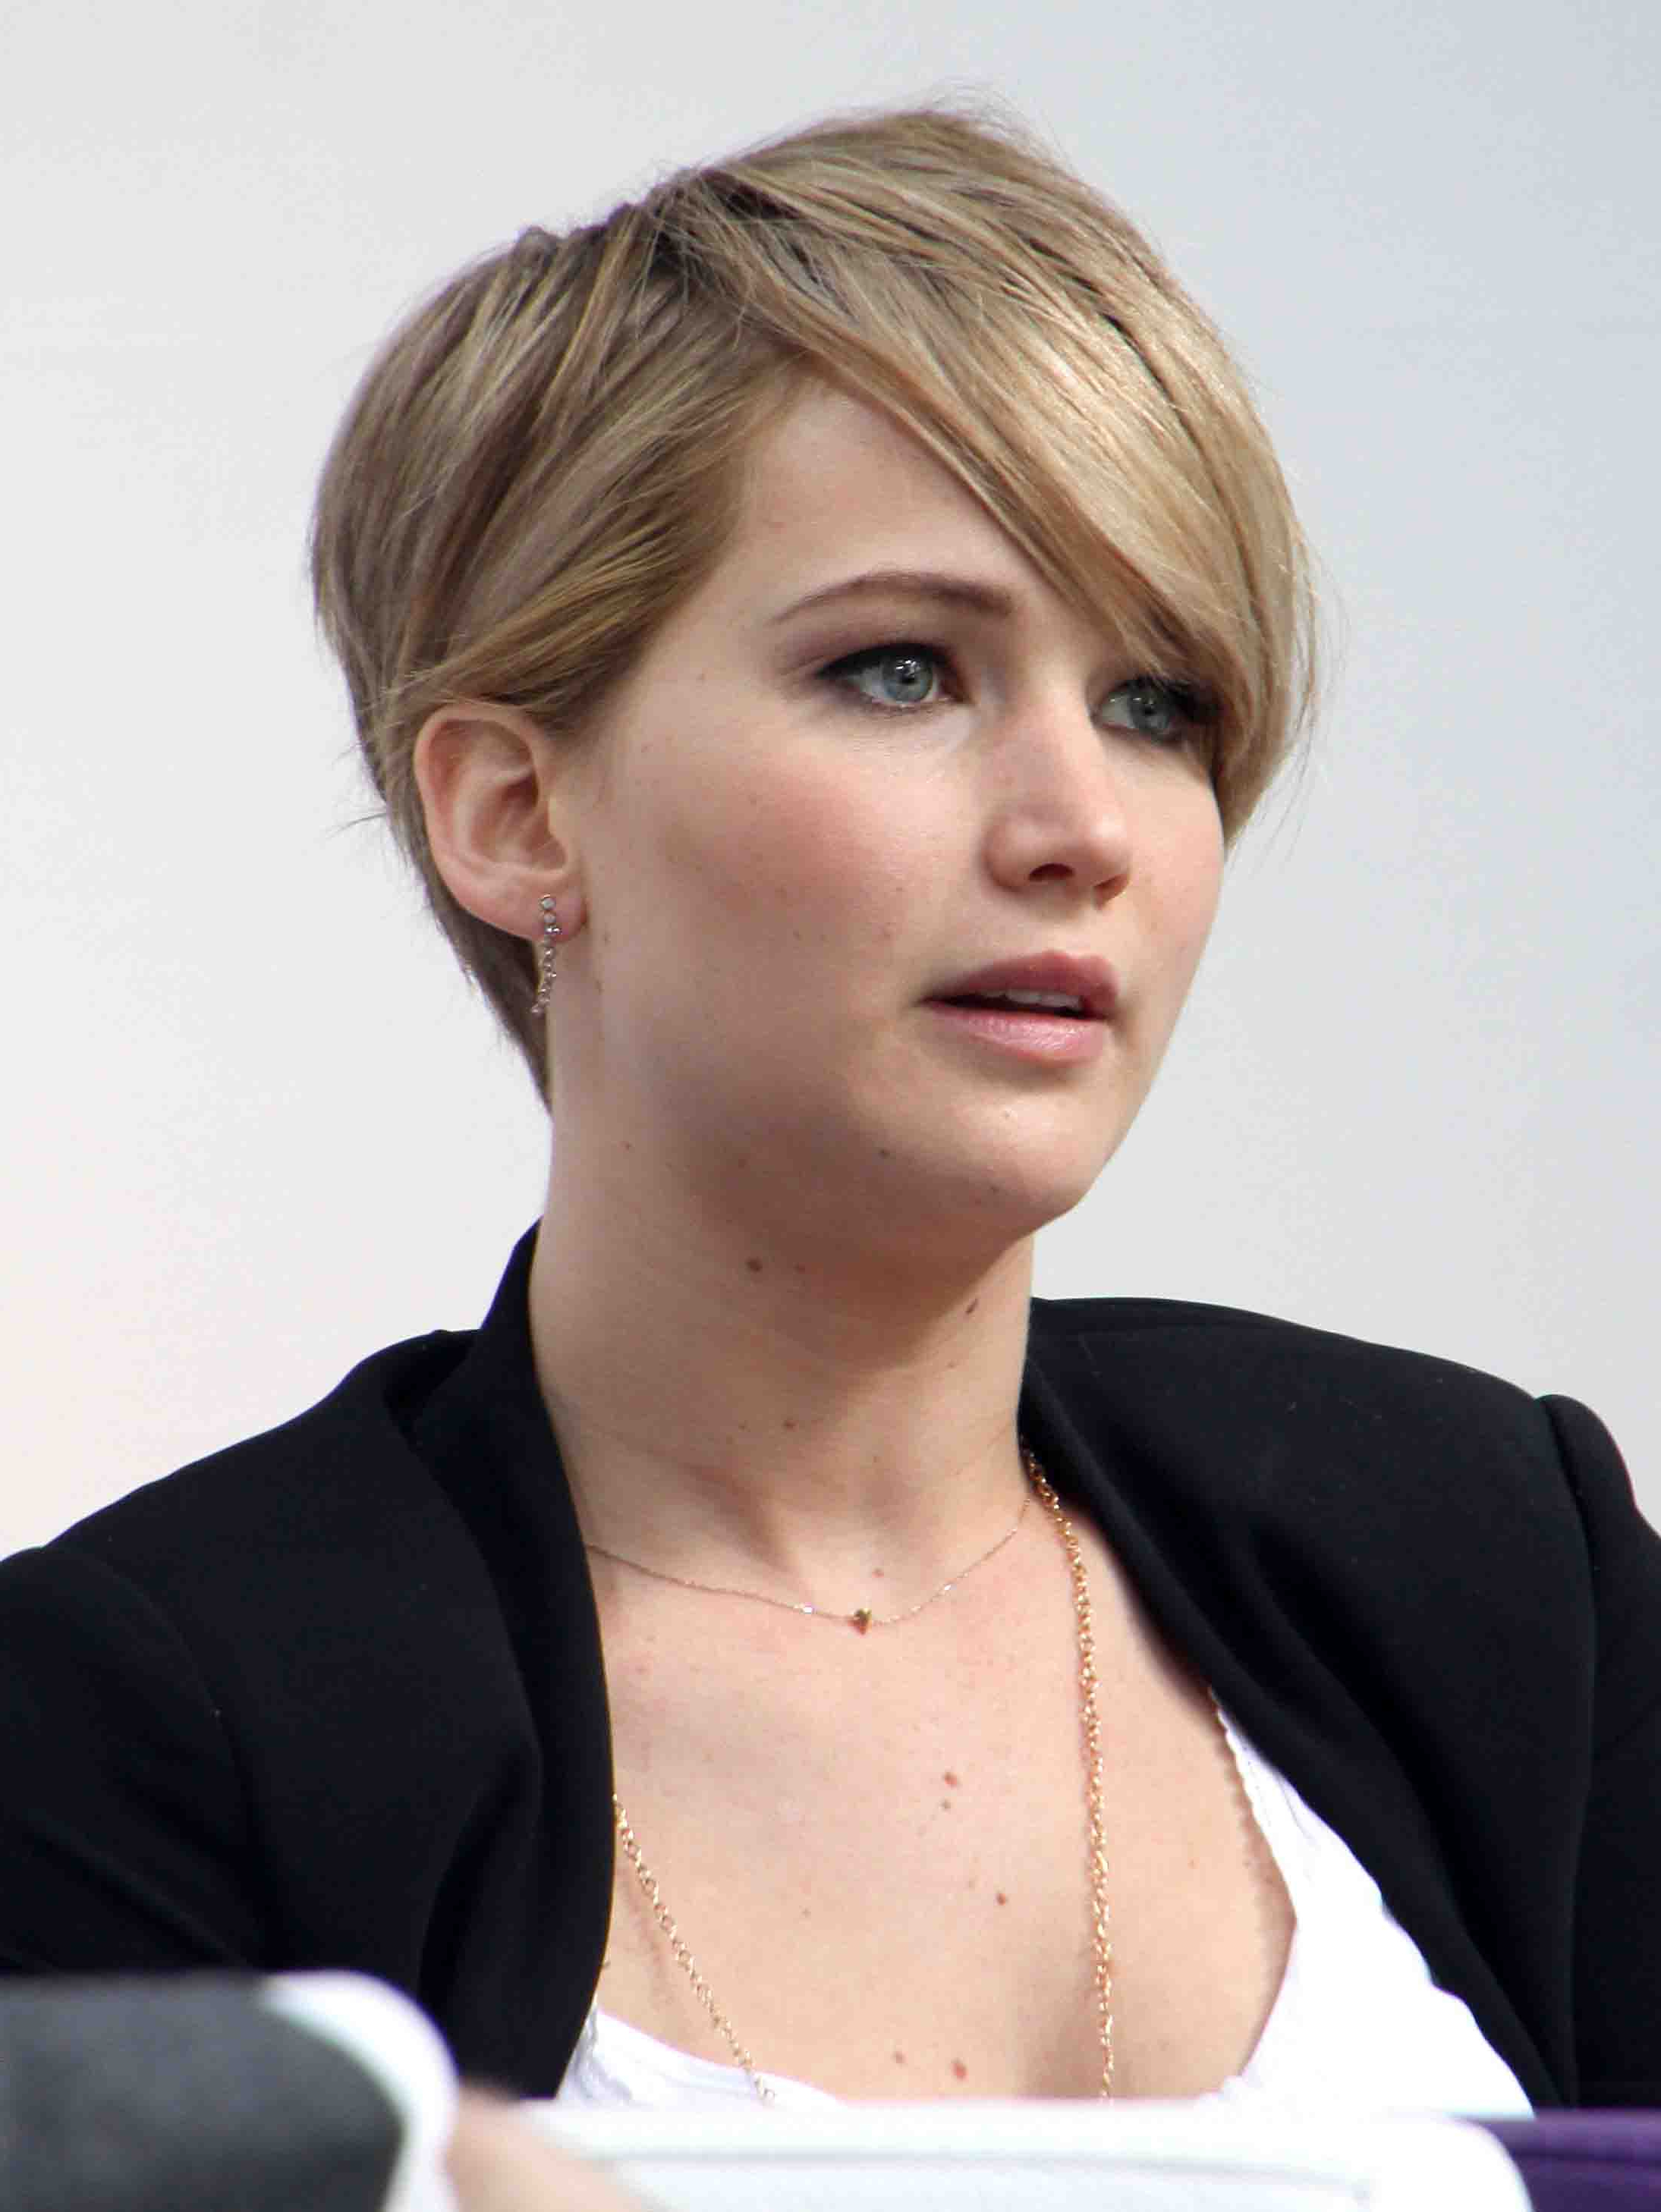 Jennifer Lawrence Hairstyles That Prove She Is The Ultimate Fashion Diva regarding Jennifer Lawrence Short Hairstyles